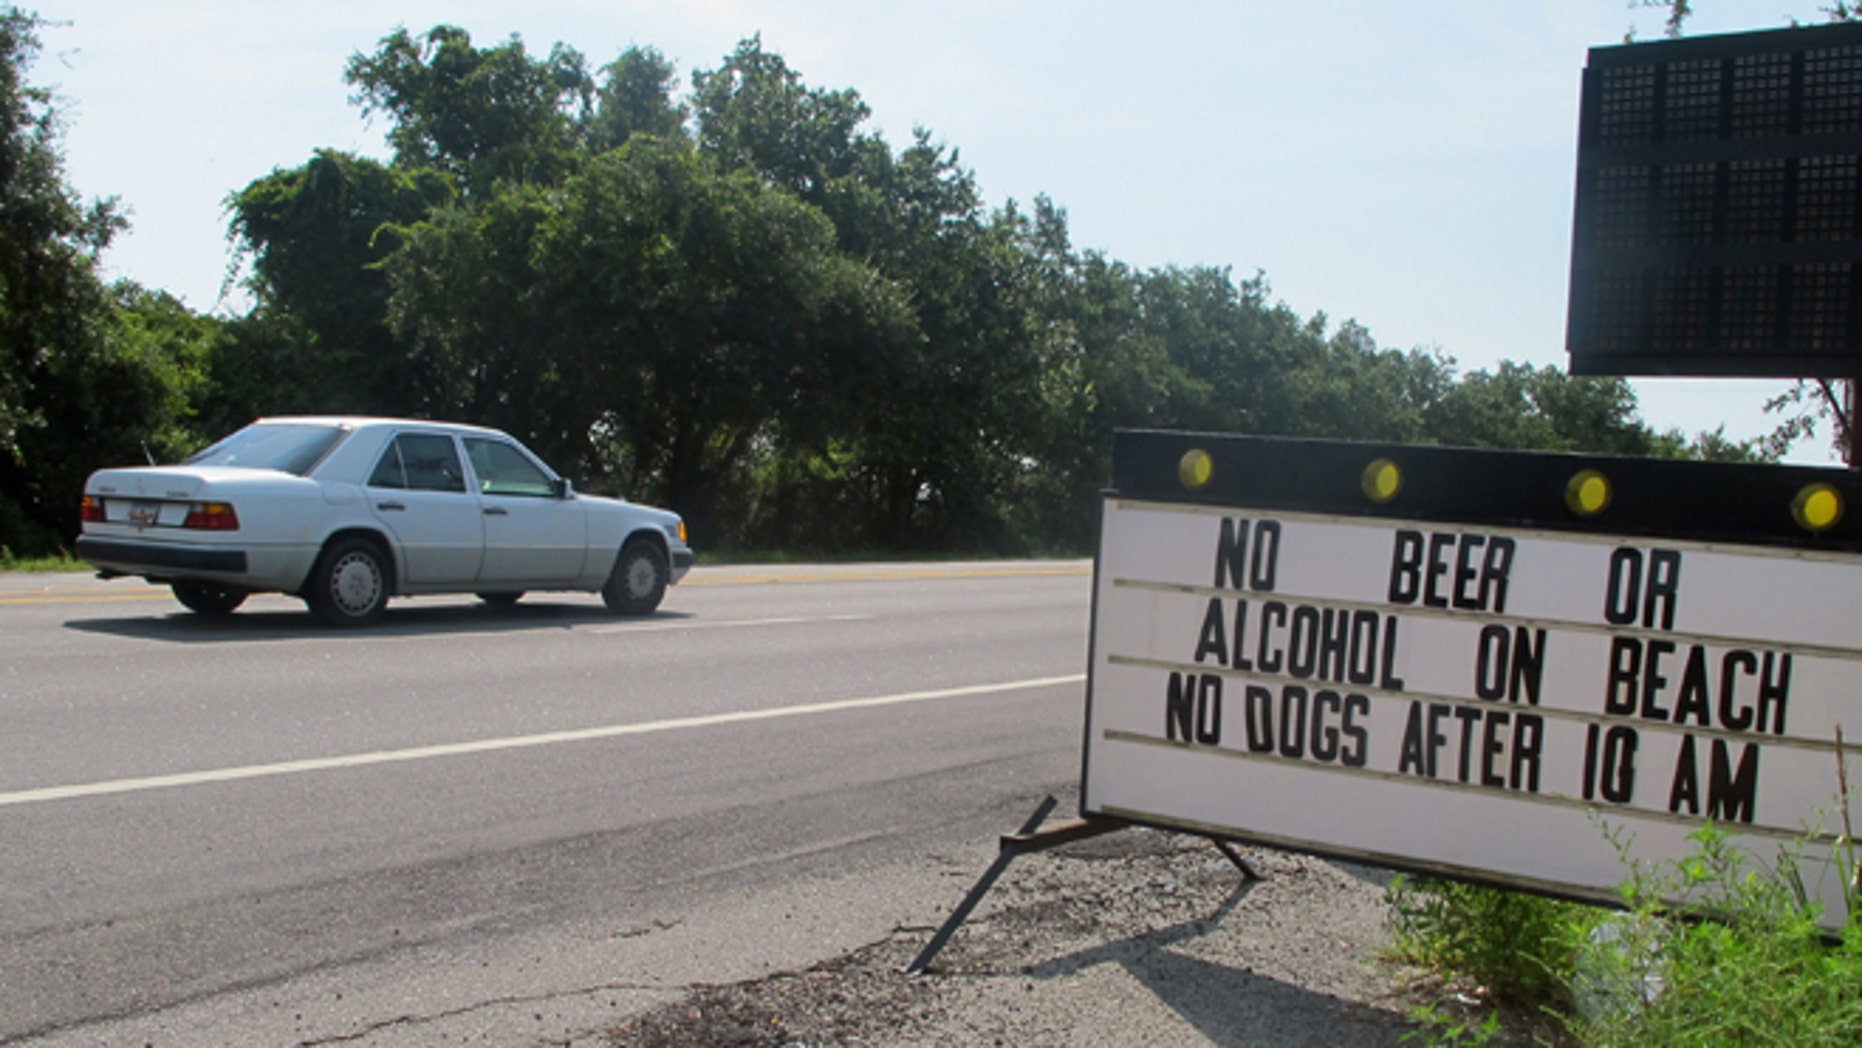 July 27, 2012: Many residents of Folly Beach, S.C. want to make the city's temporary beach alcohol ban permanent.